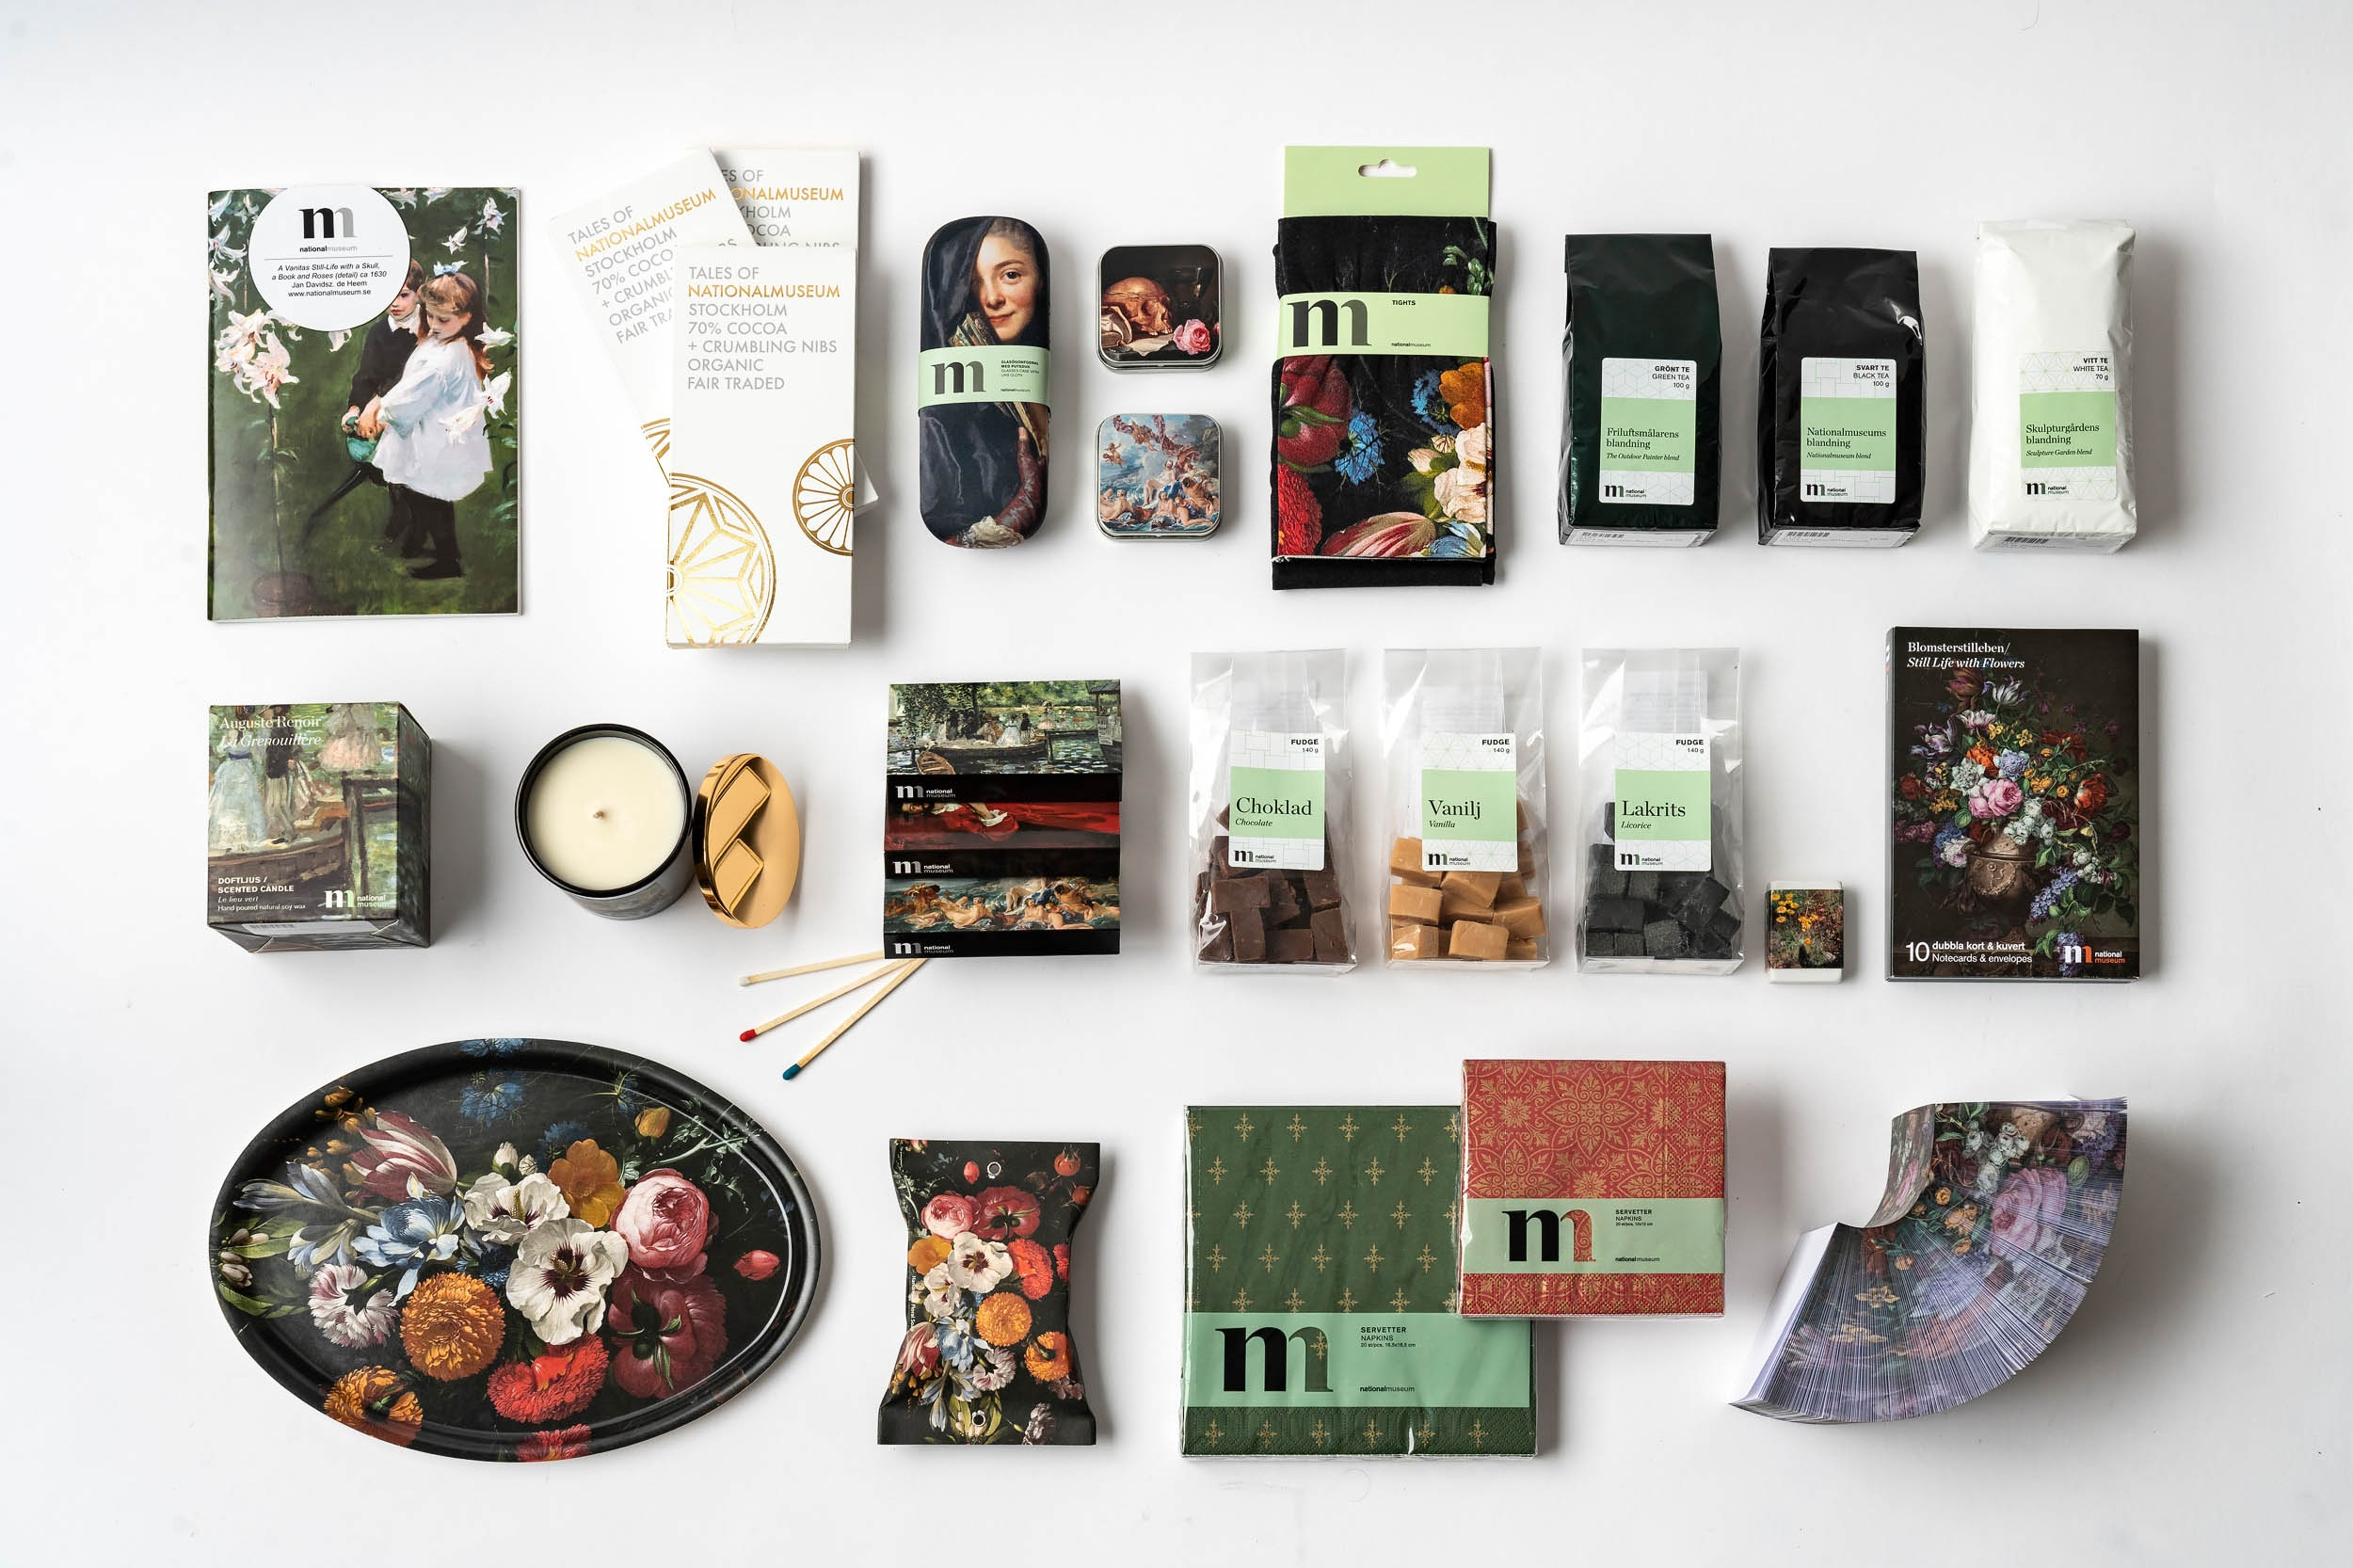 BRAND IDENTITY AND PACKAGING DESIGN - Based on brand identities we create the visual extension for products, clothing and packaging. It is crucial that the take home product truly represents the brand, and continues to inspire and educate the shopper beyond the purchase point. Our talented commercial designers translates brand stories into all kinds of shapes and sizes.